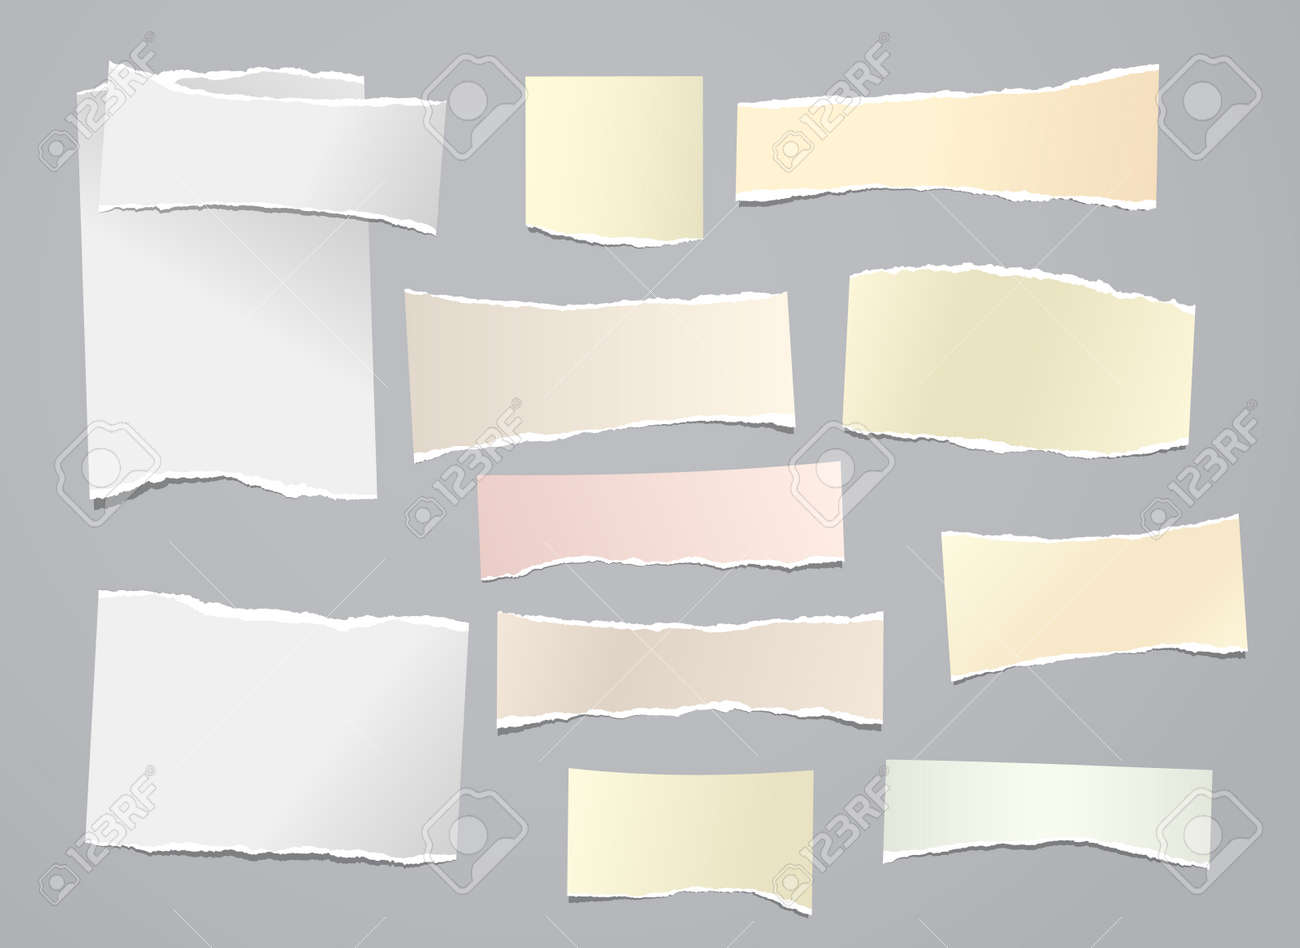 White and yellow torn note, notebook paper stripes are on grey background for text, advertising or design. Vector illustration - 169560972